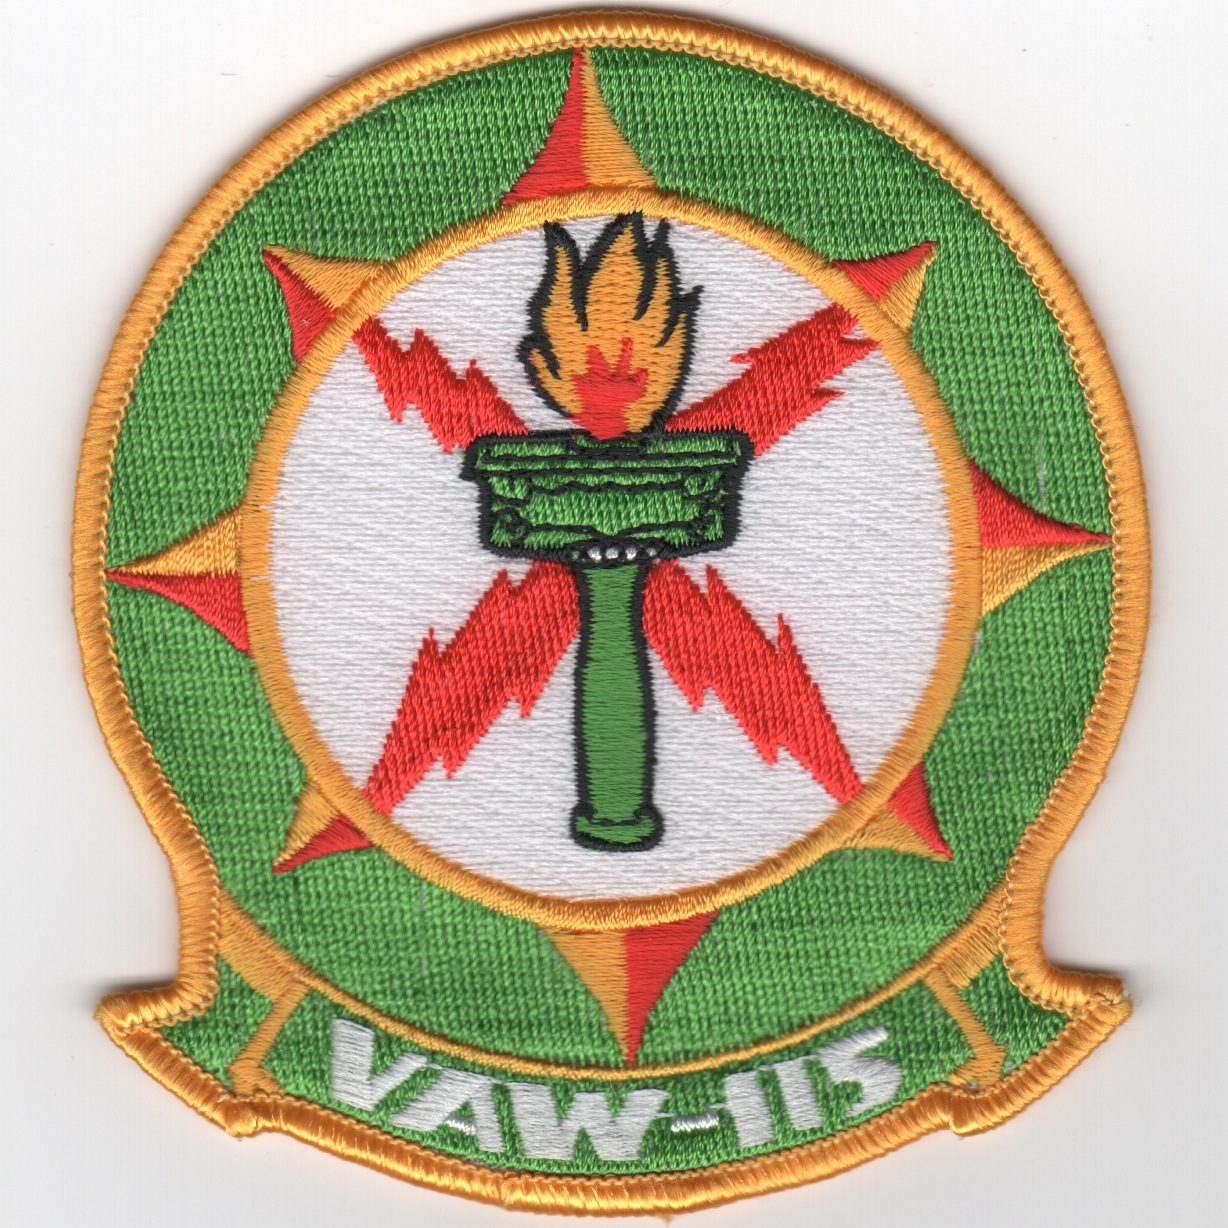 VAW-115 Squadron Patch (Green)